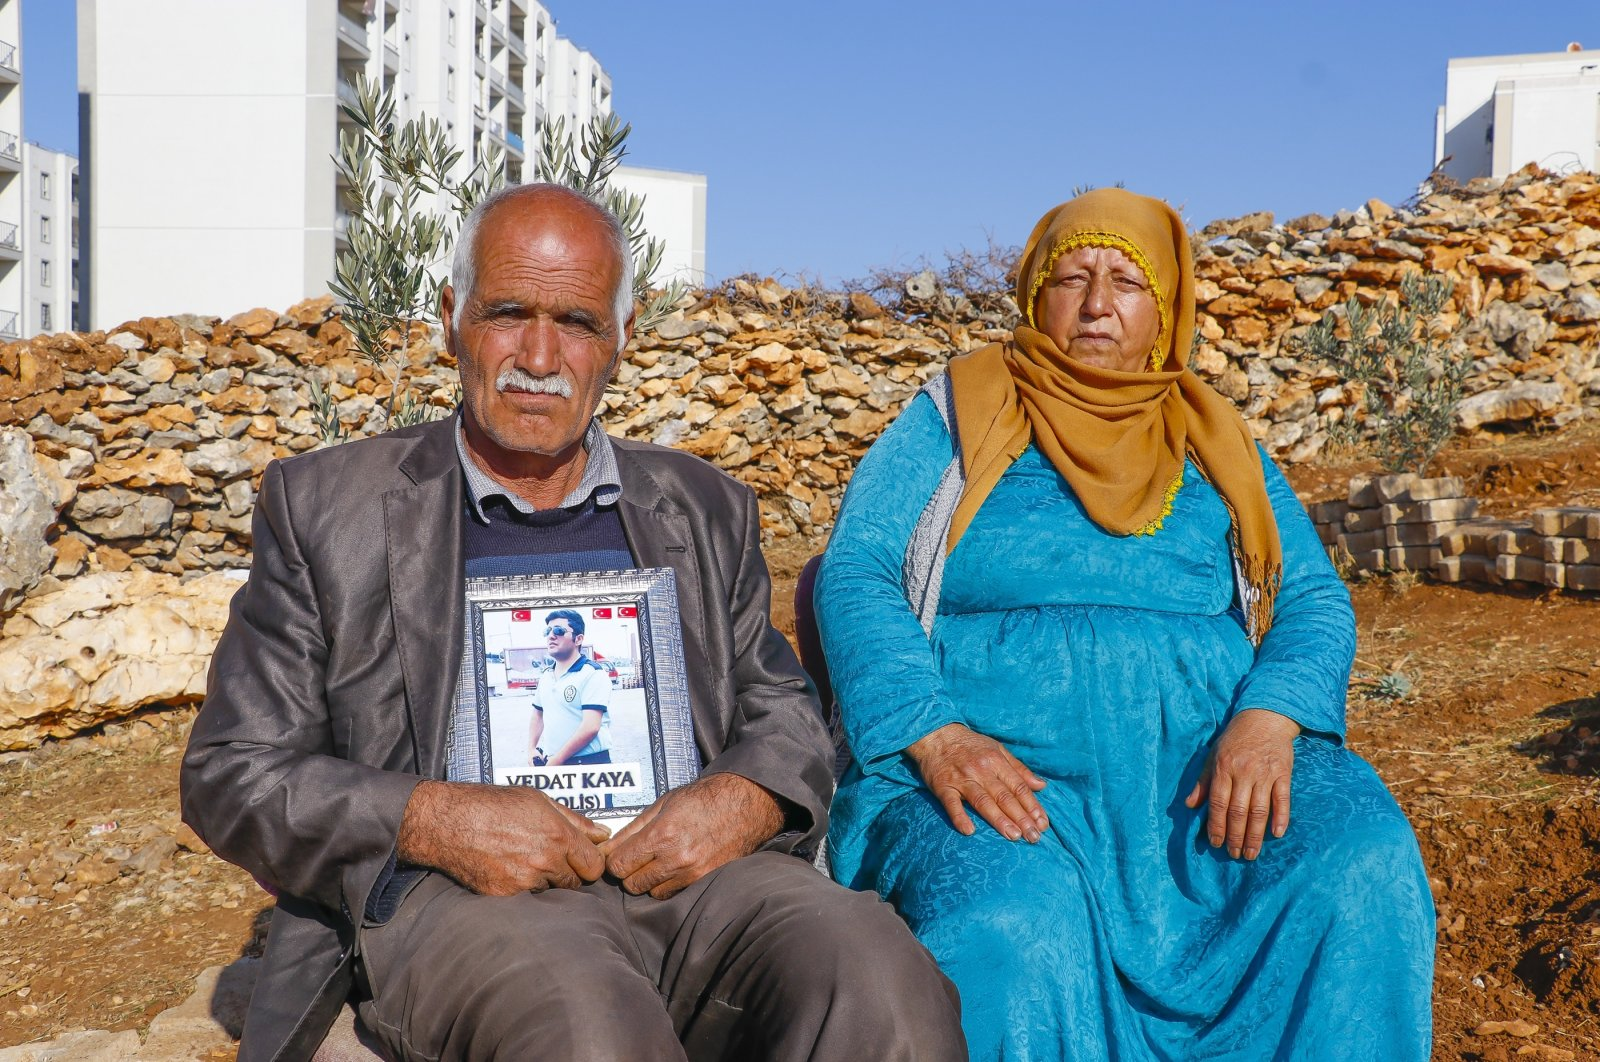 Şeyhmus and Emine Kaya sit, holding a picture of their son Vedat, who was abducted by the PKK five years ago, Dec. 7, 2020. (DHA)